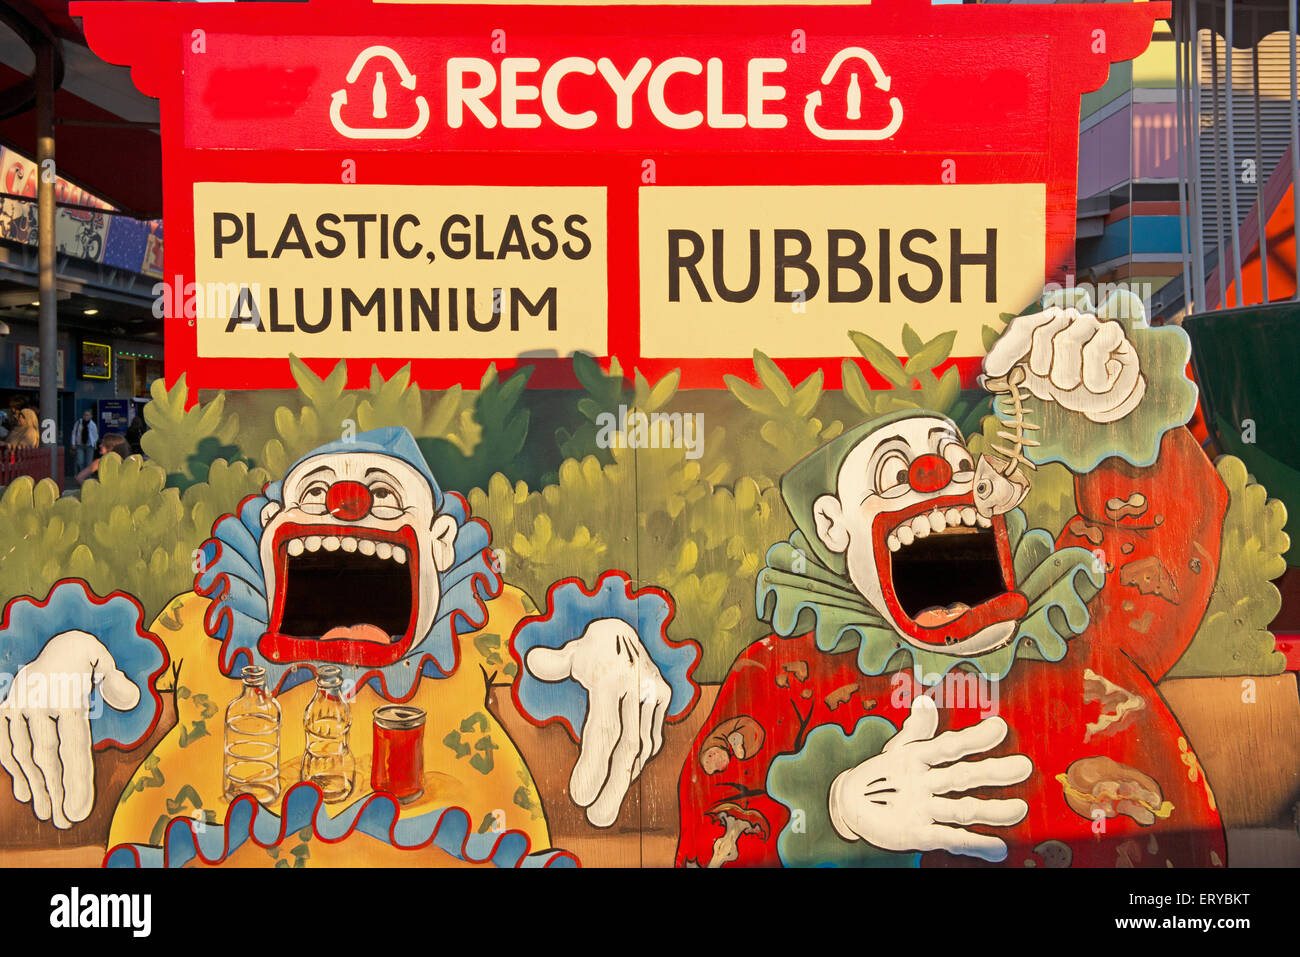 Recycling board, Sydney, New South Wales, Australia, - Stock Image